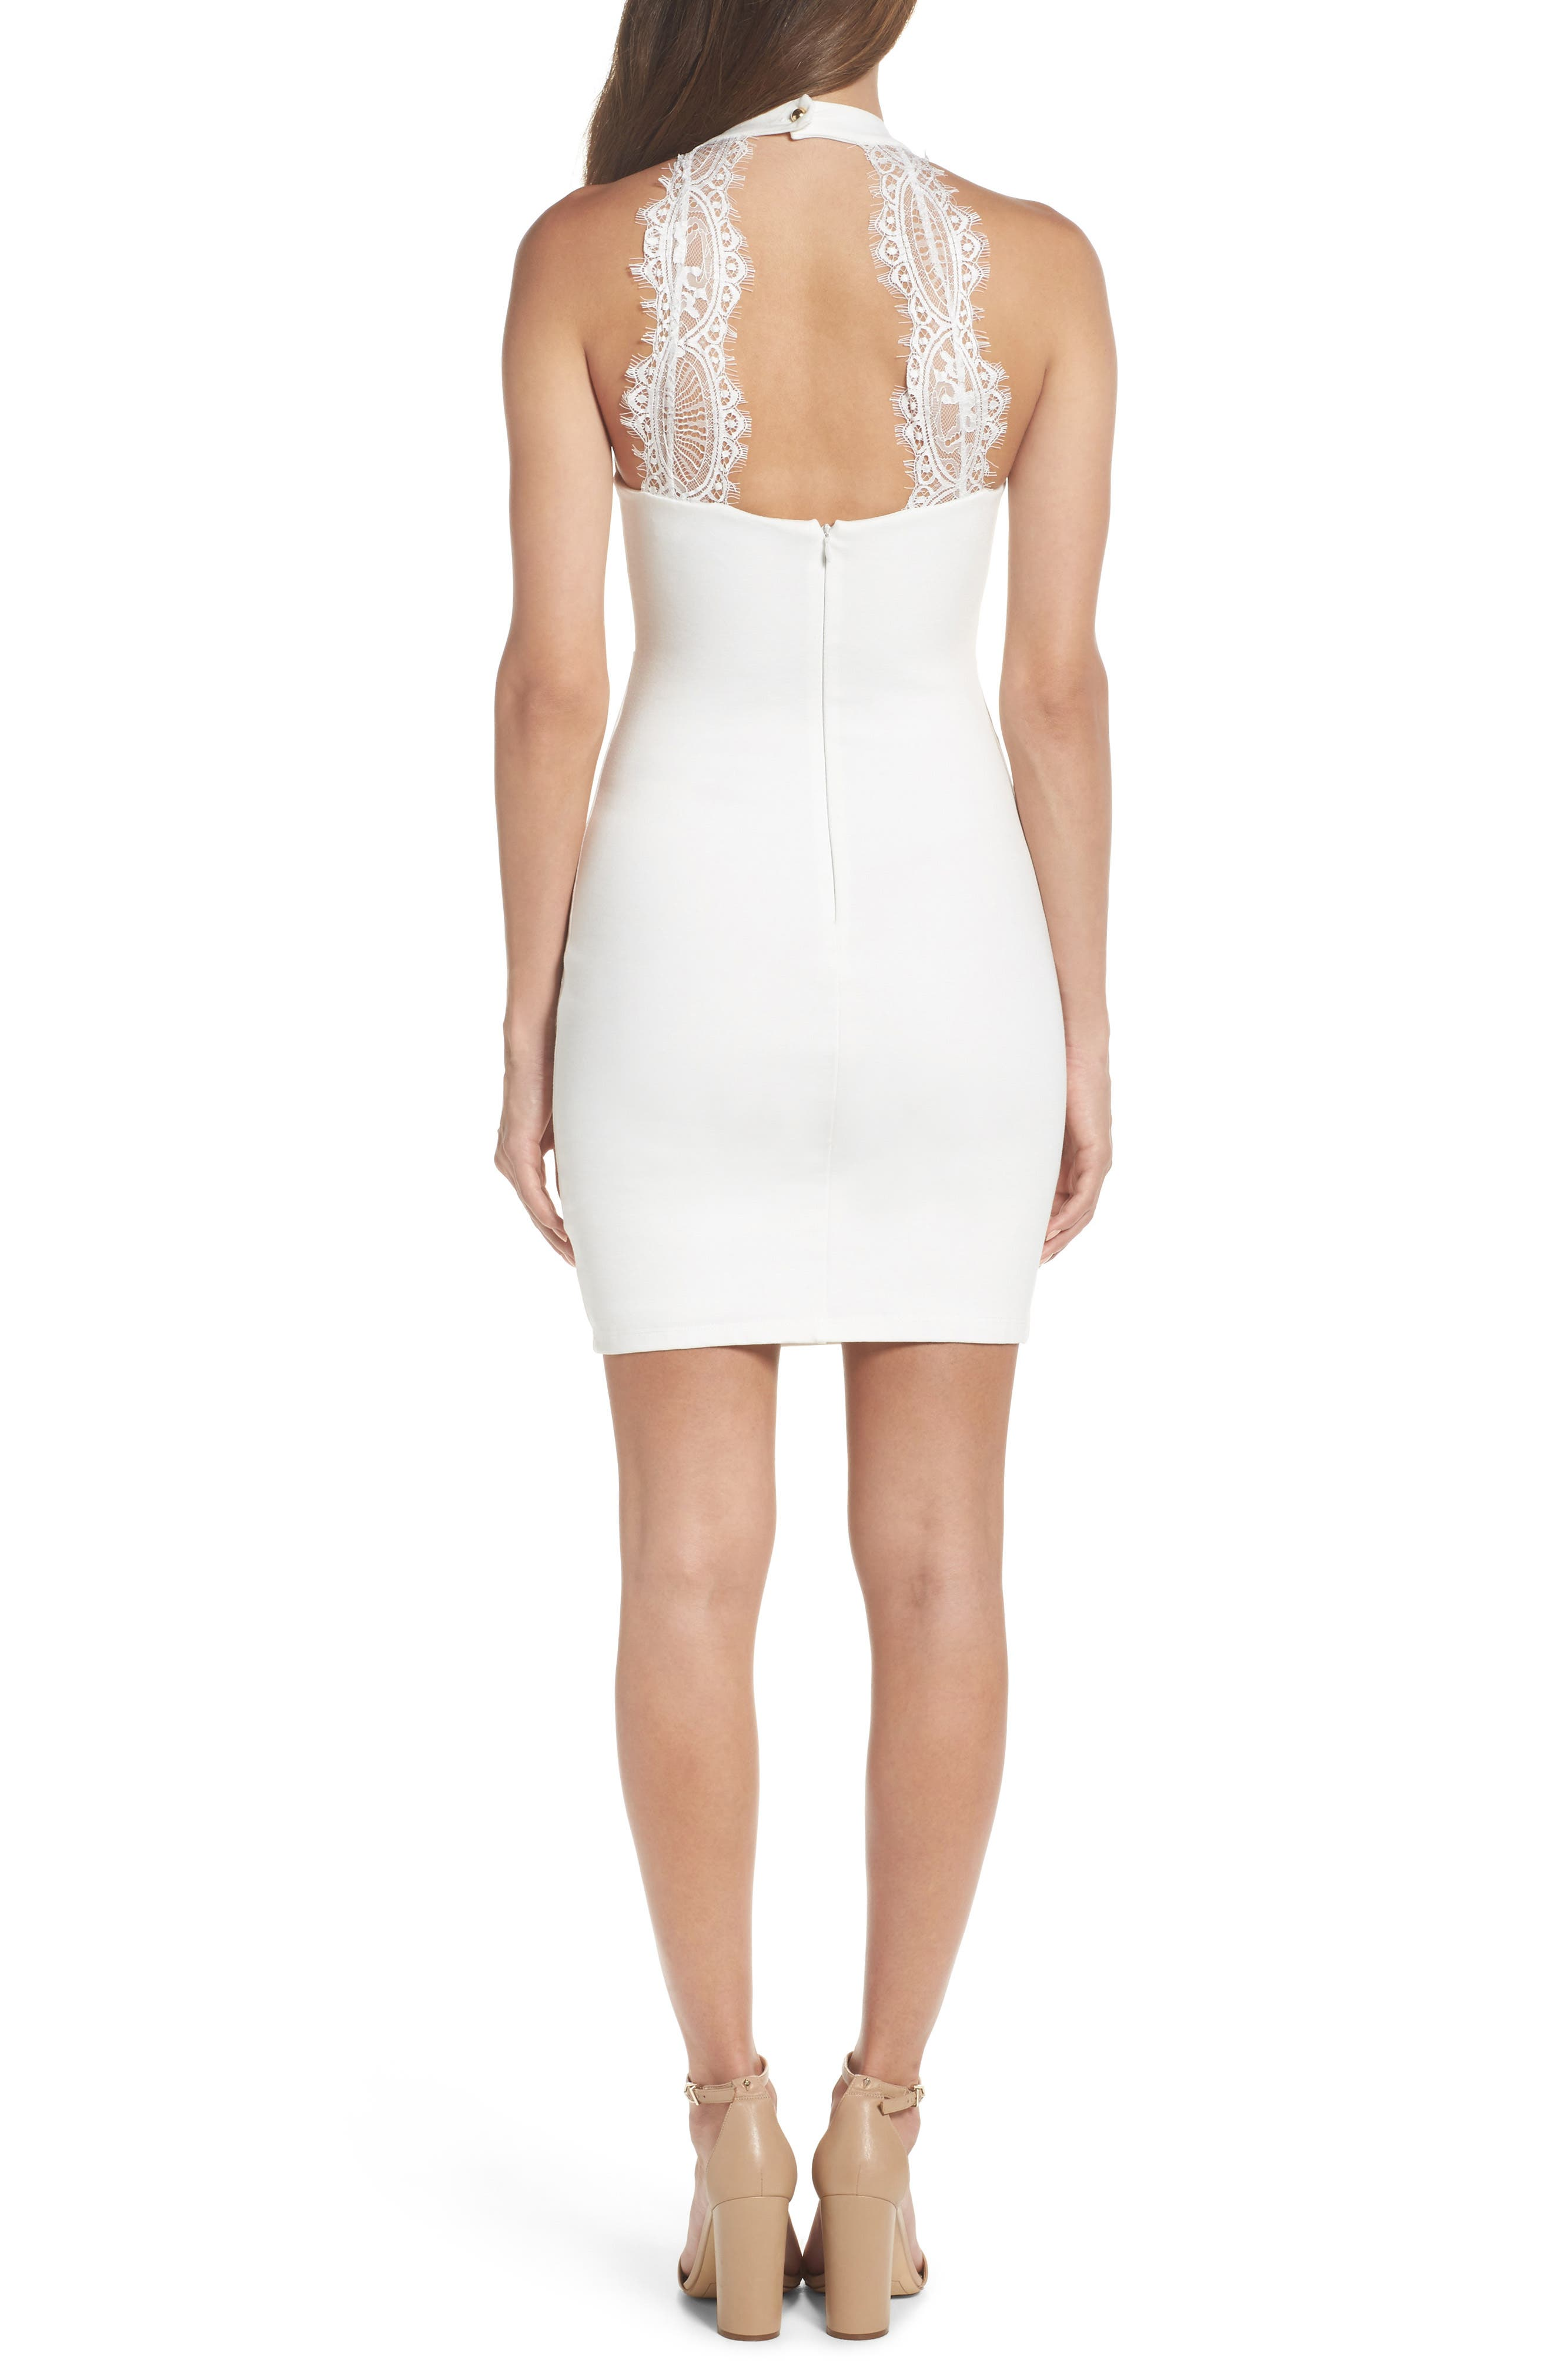 Endlessly Alluring Lace Trim Body Con Dress,                             Alternate thumbnail 2, color,                             White